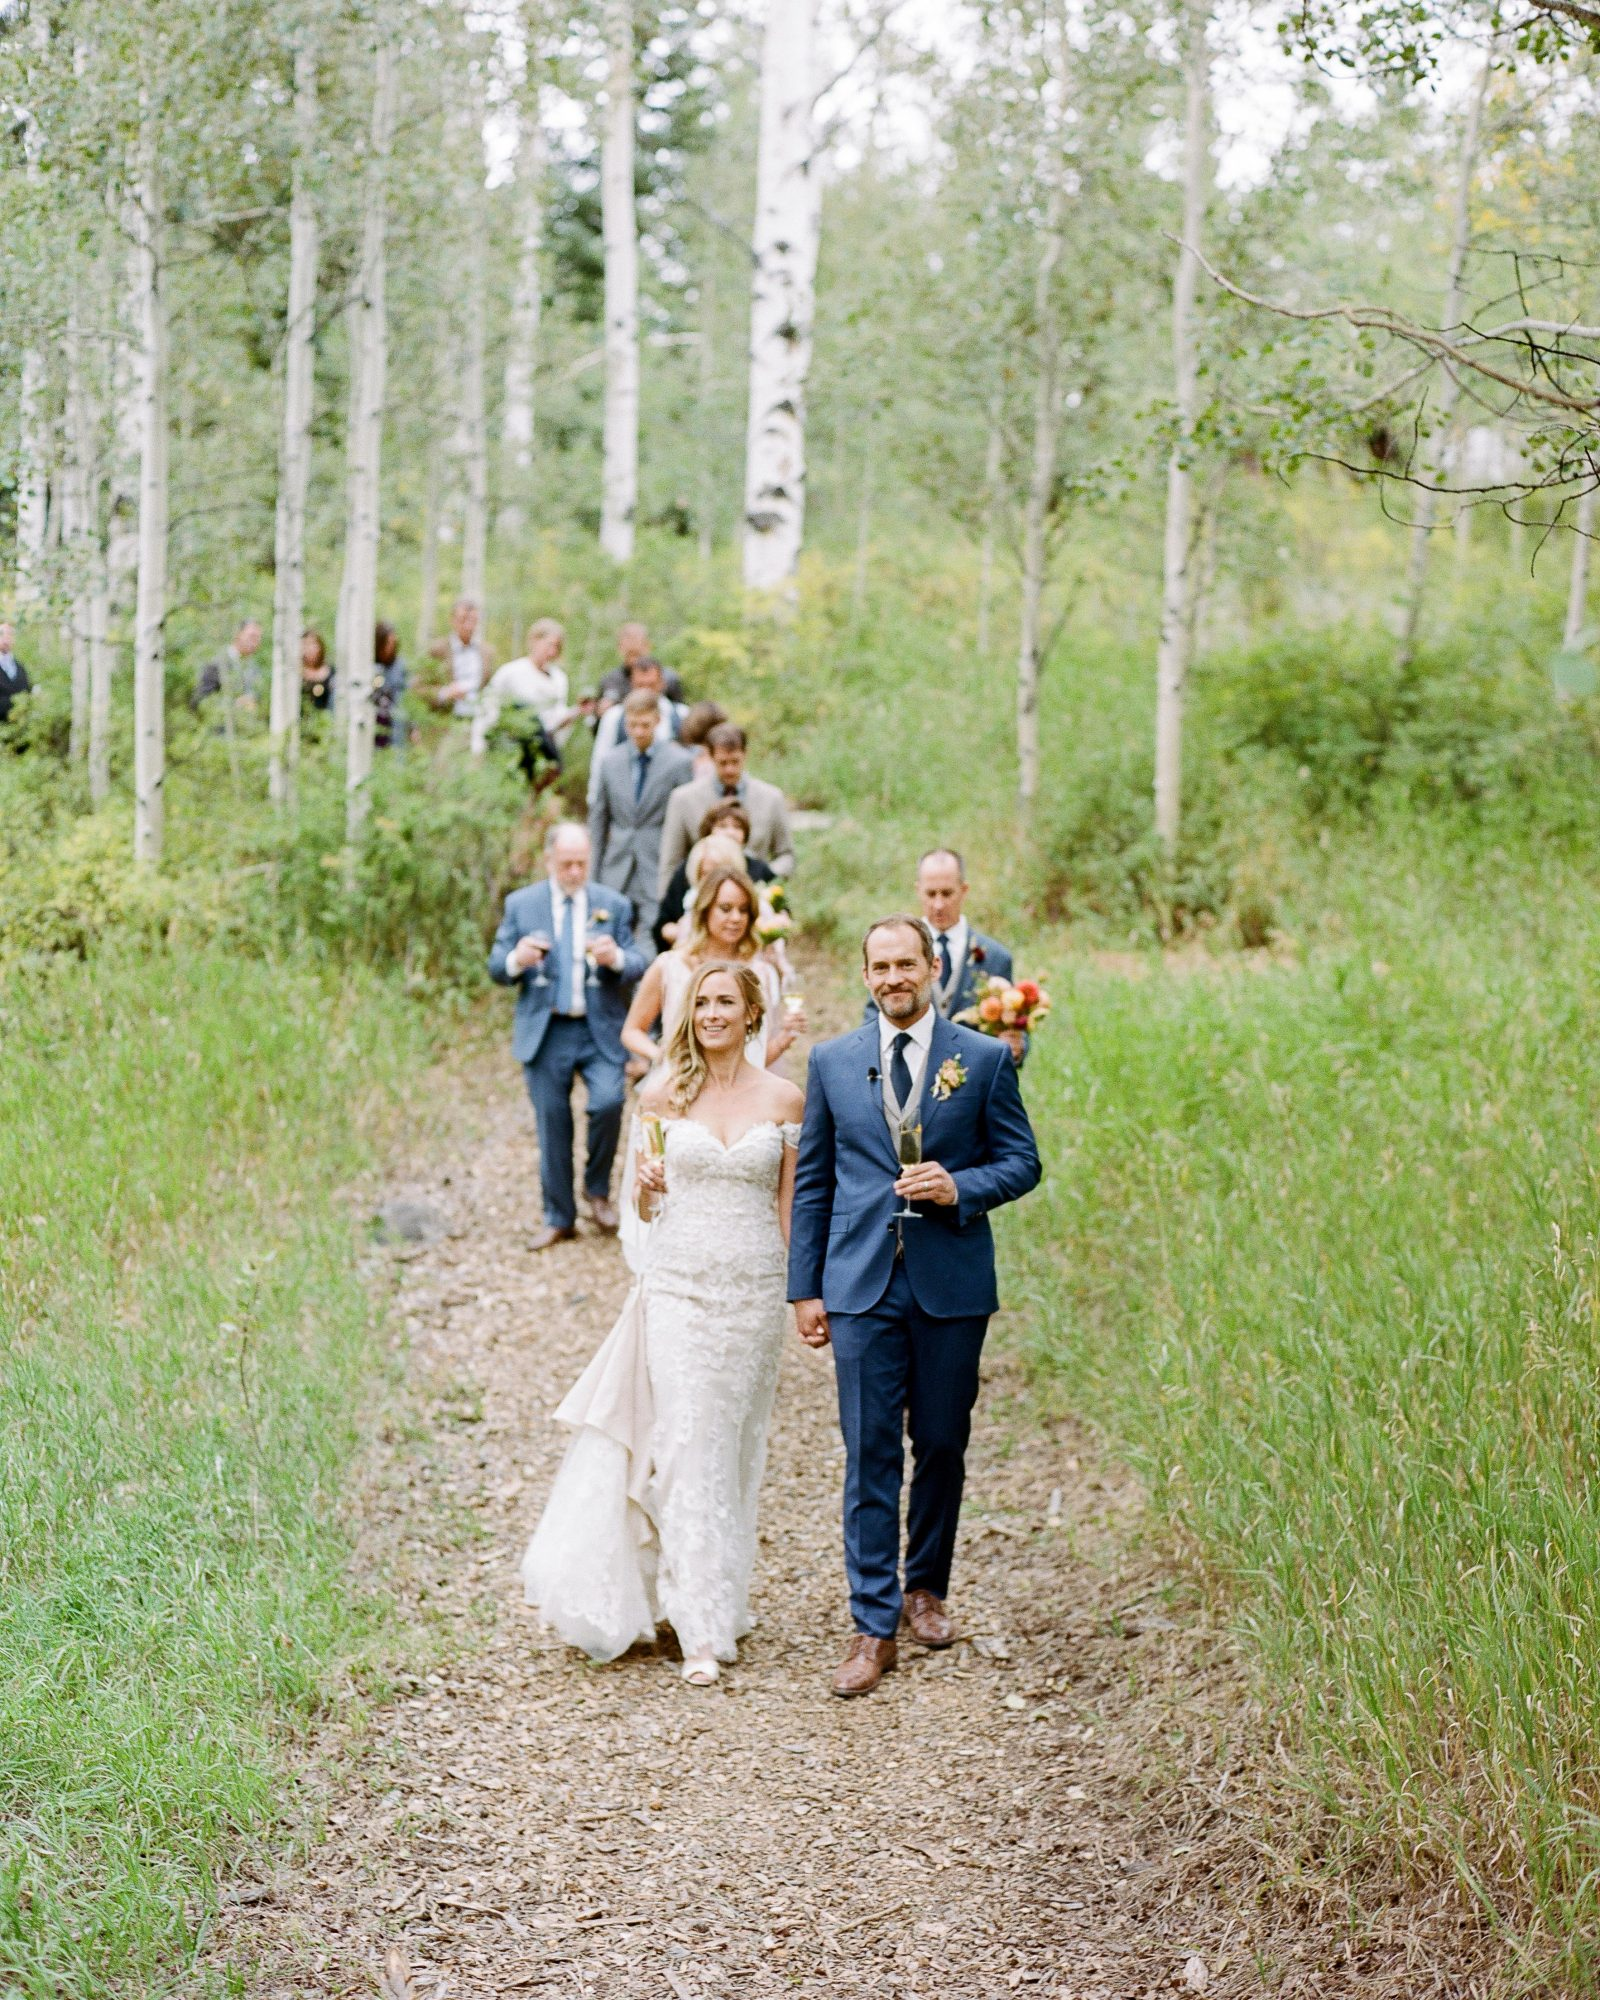 jill phil wedding couple and guests walking through wooded area